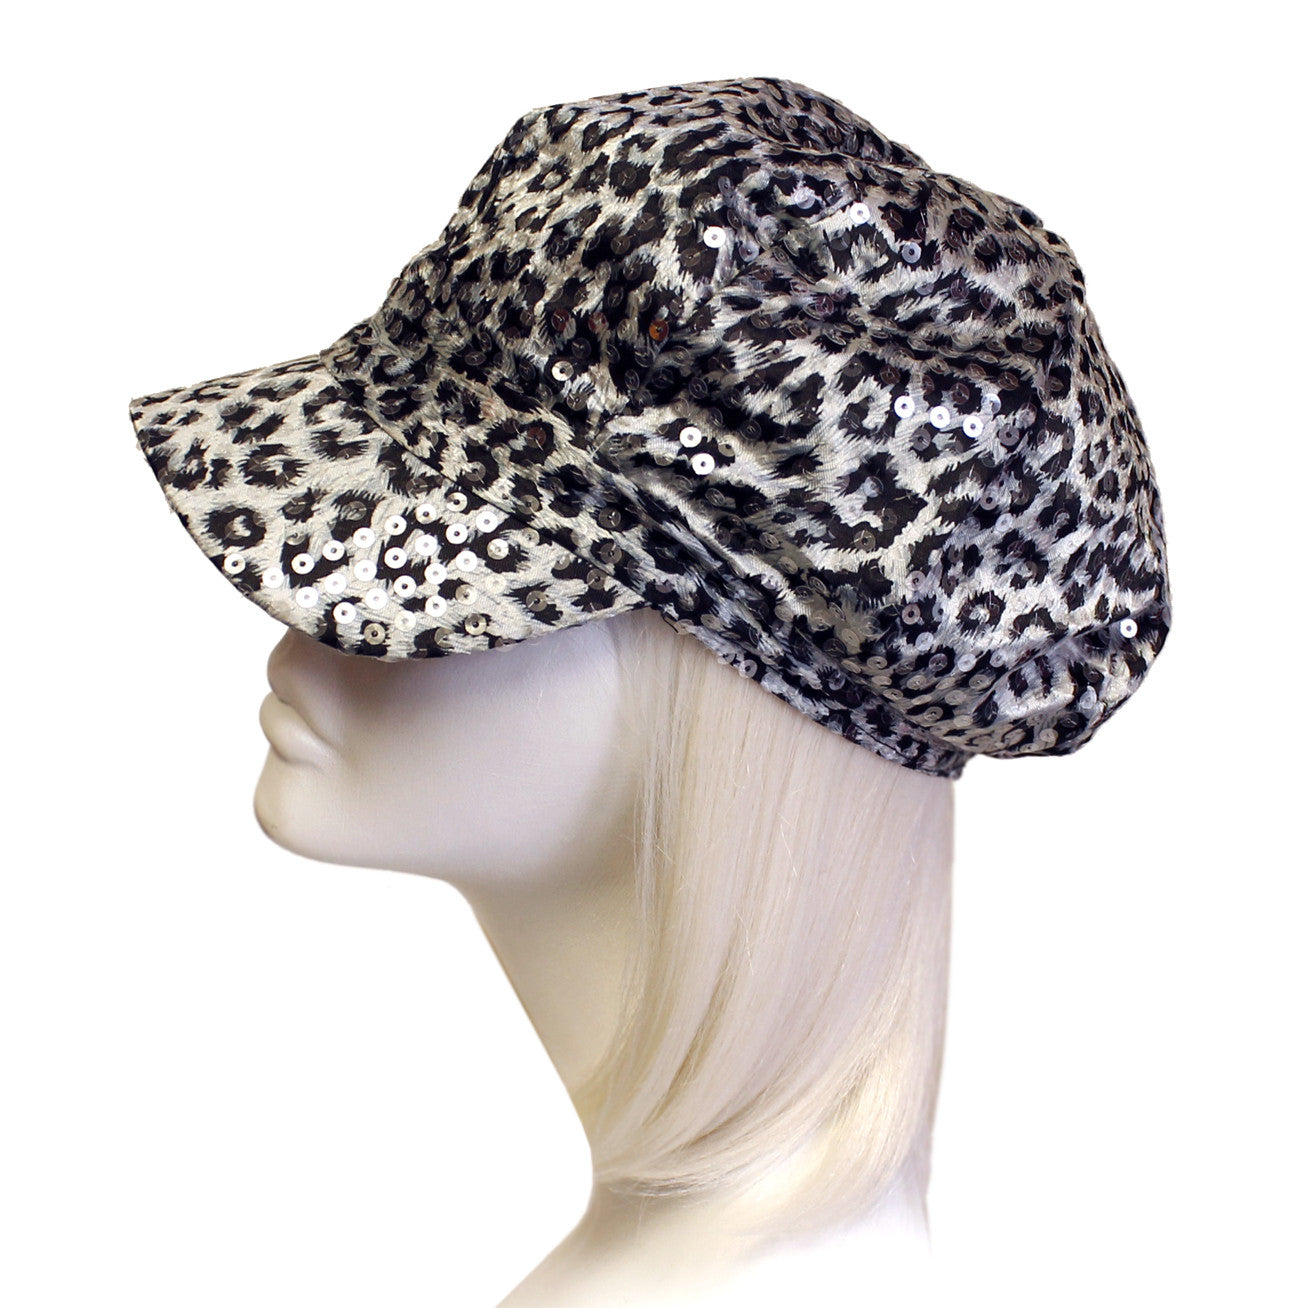 Mr. Song Millinery Newsboy Leopard Print Glitter Cap - 2 Colors